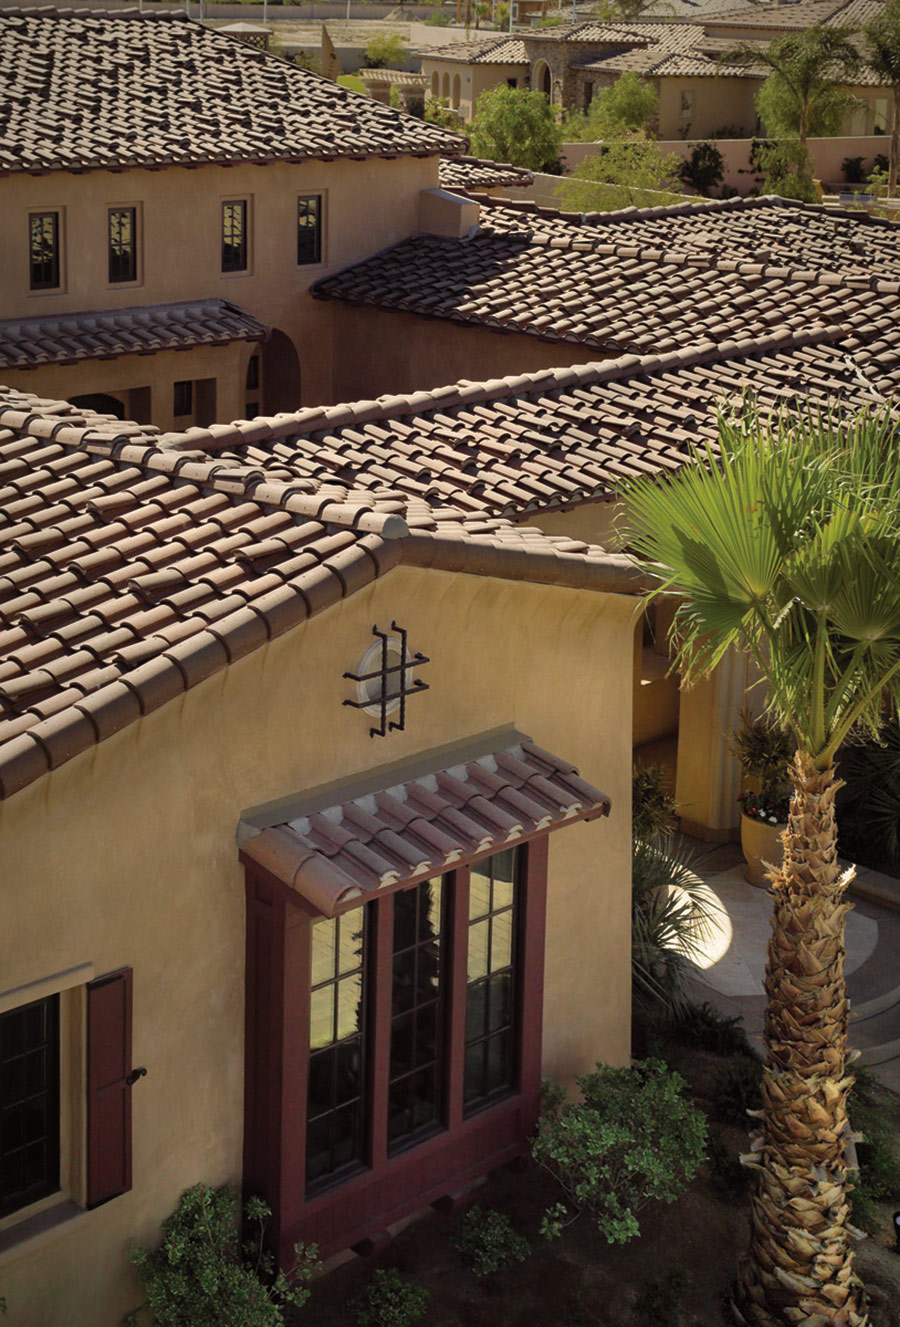 Boosted Roof Tiles - 30 Percent